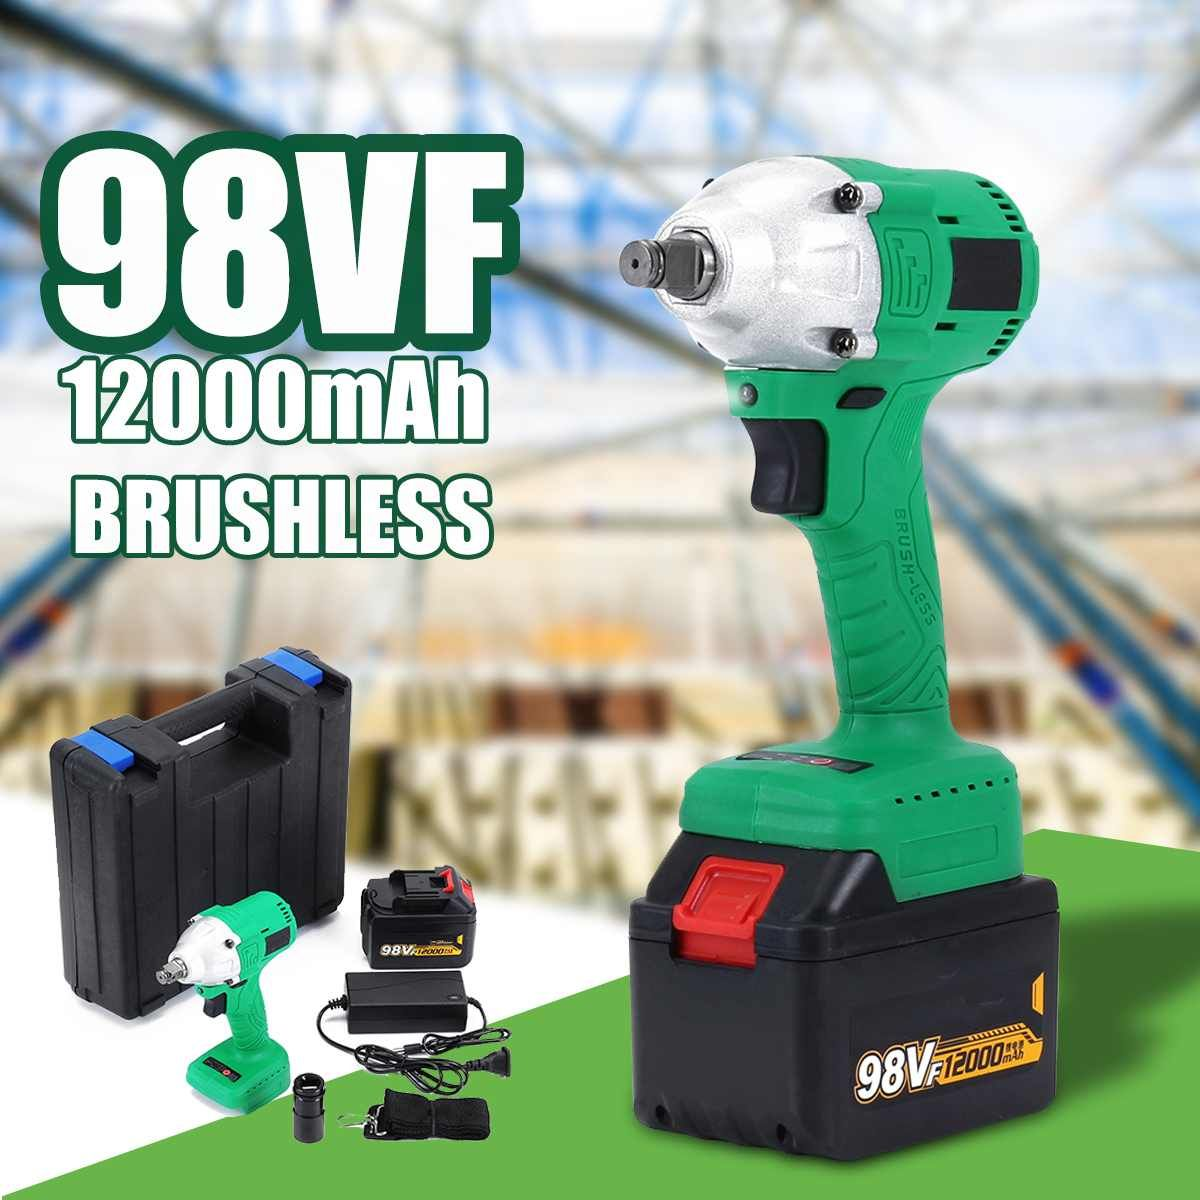 460Nm 98VF Cordless High Speed Impact Wrench 12000mAh Lithium Battery Rechargable Brushless Electric Impact Wrench Power Tool